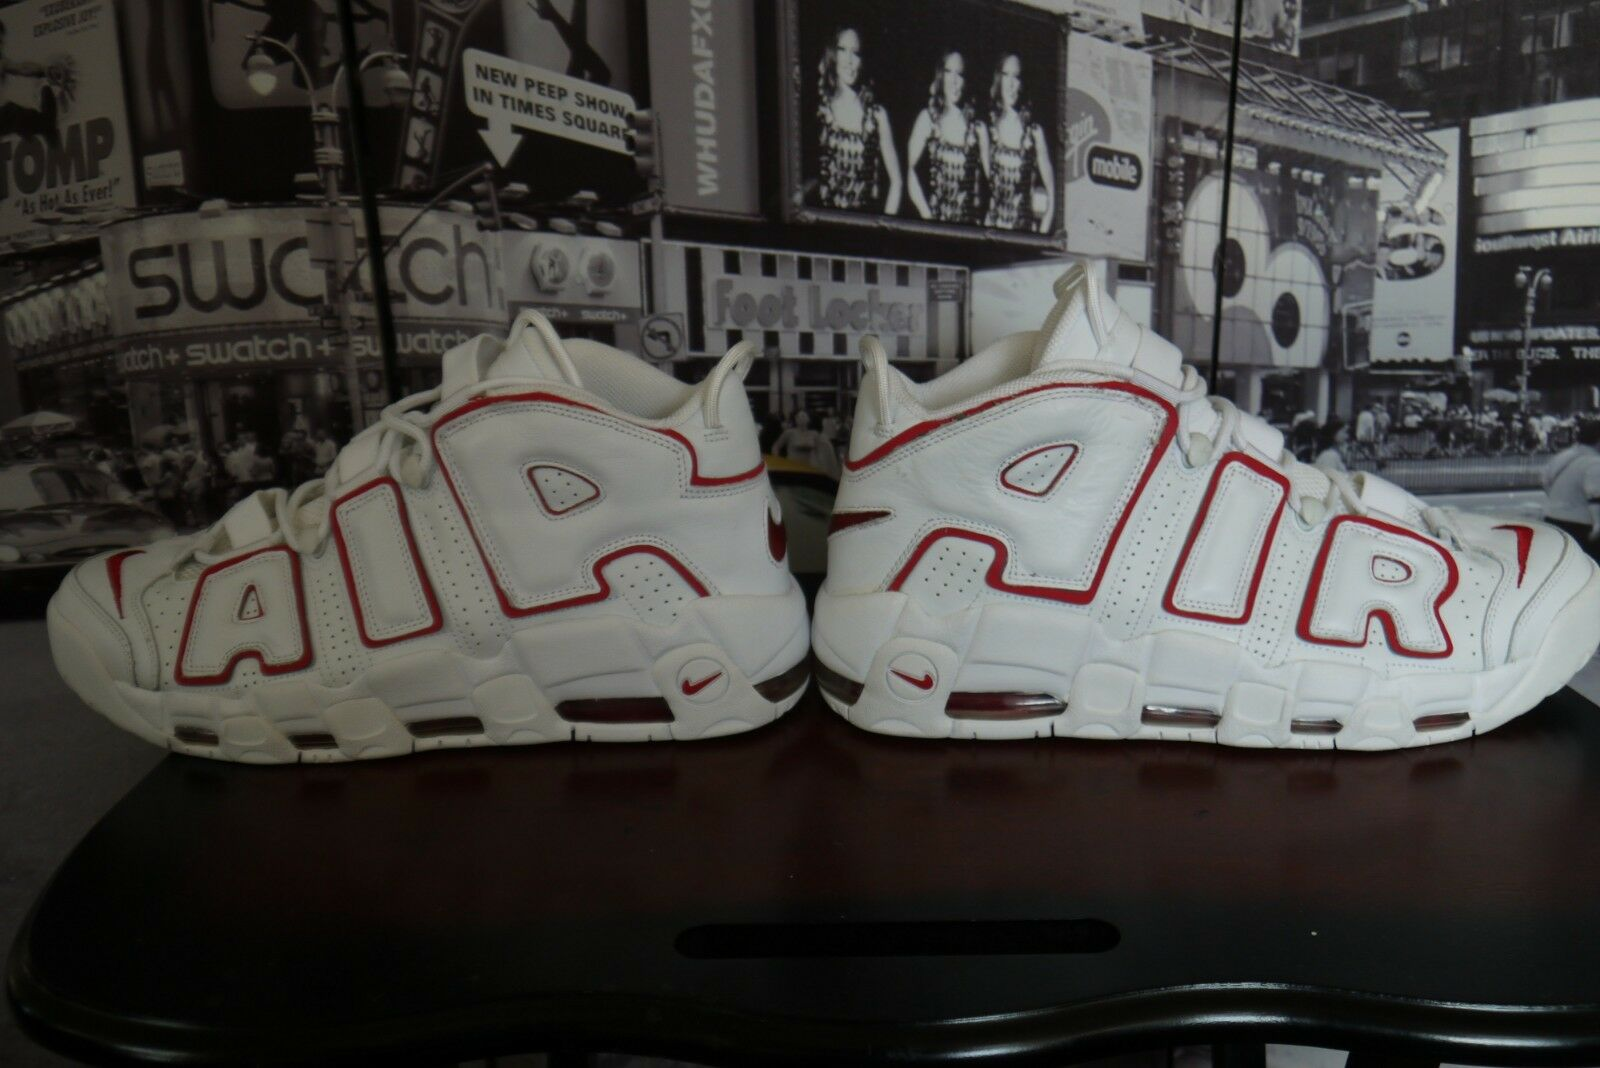 2006 NIKE AIR MORE MORE MORE UPTEMPO White Varsity Red Scottie Pippen US 12  312971 161 063198